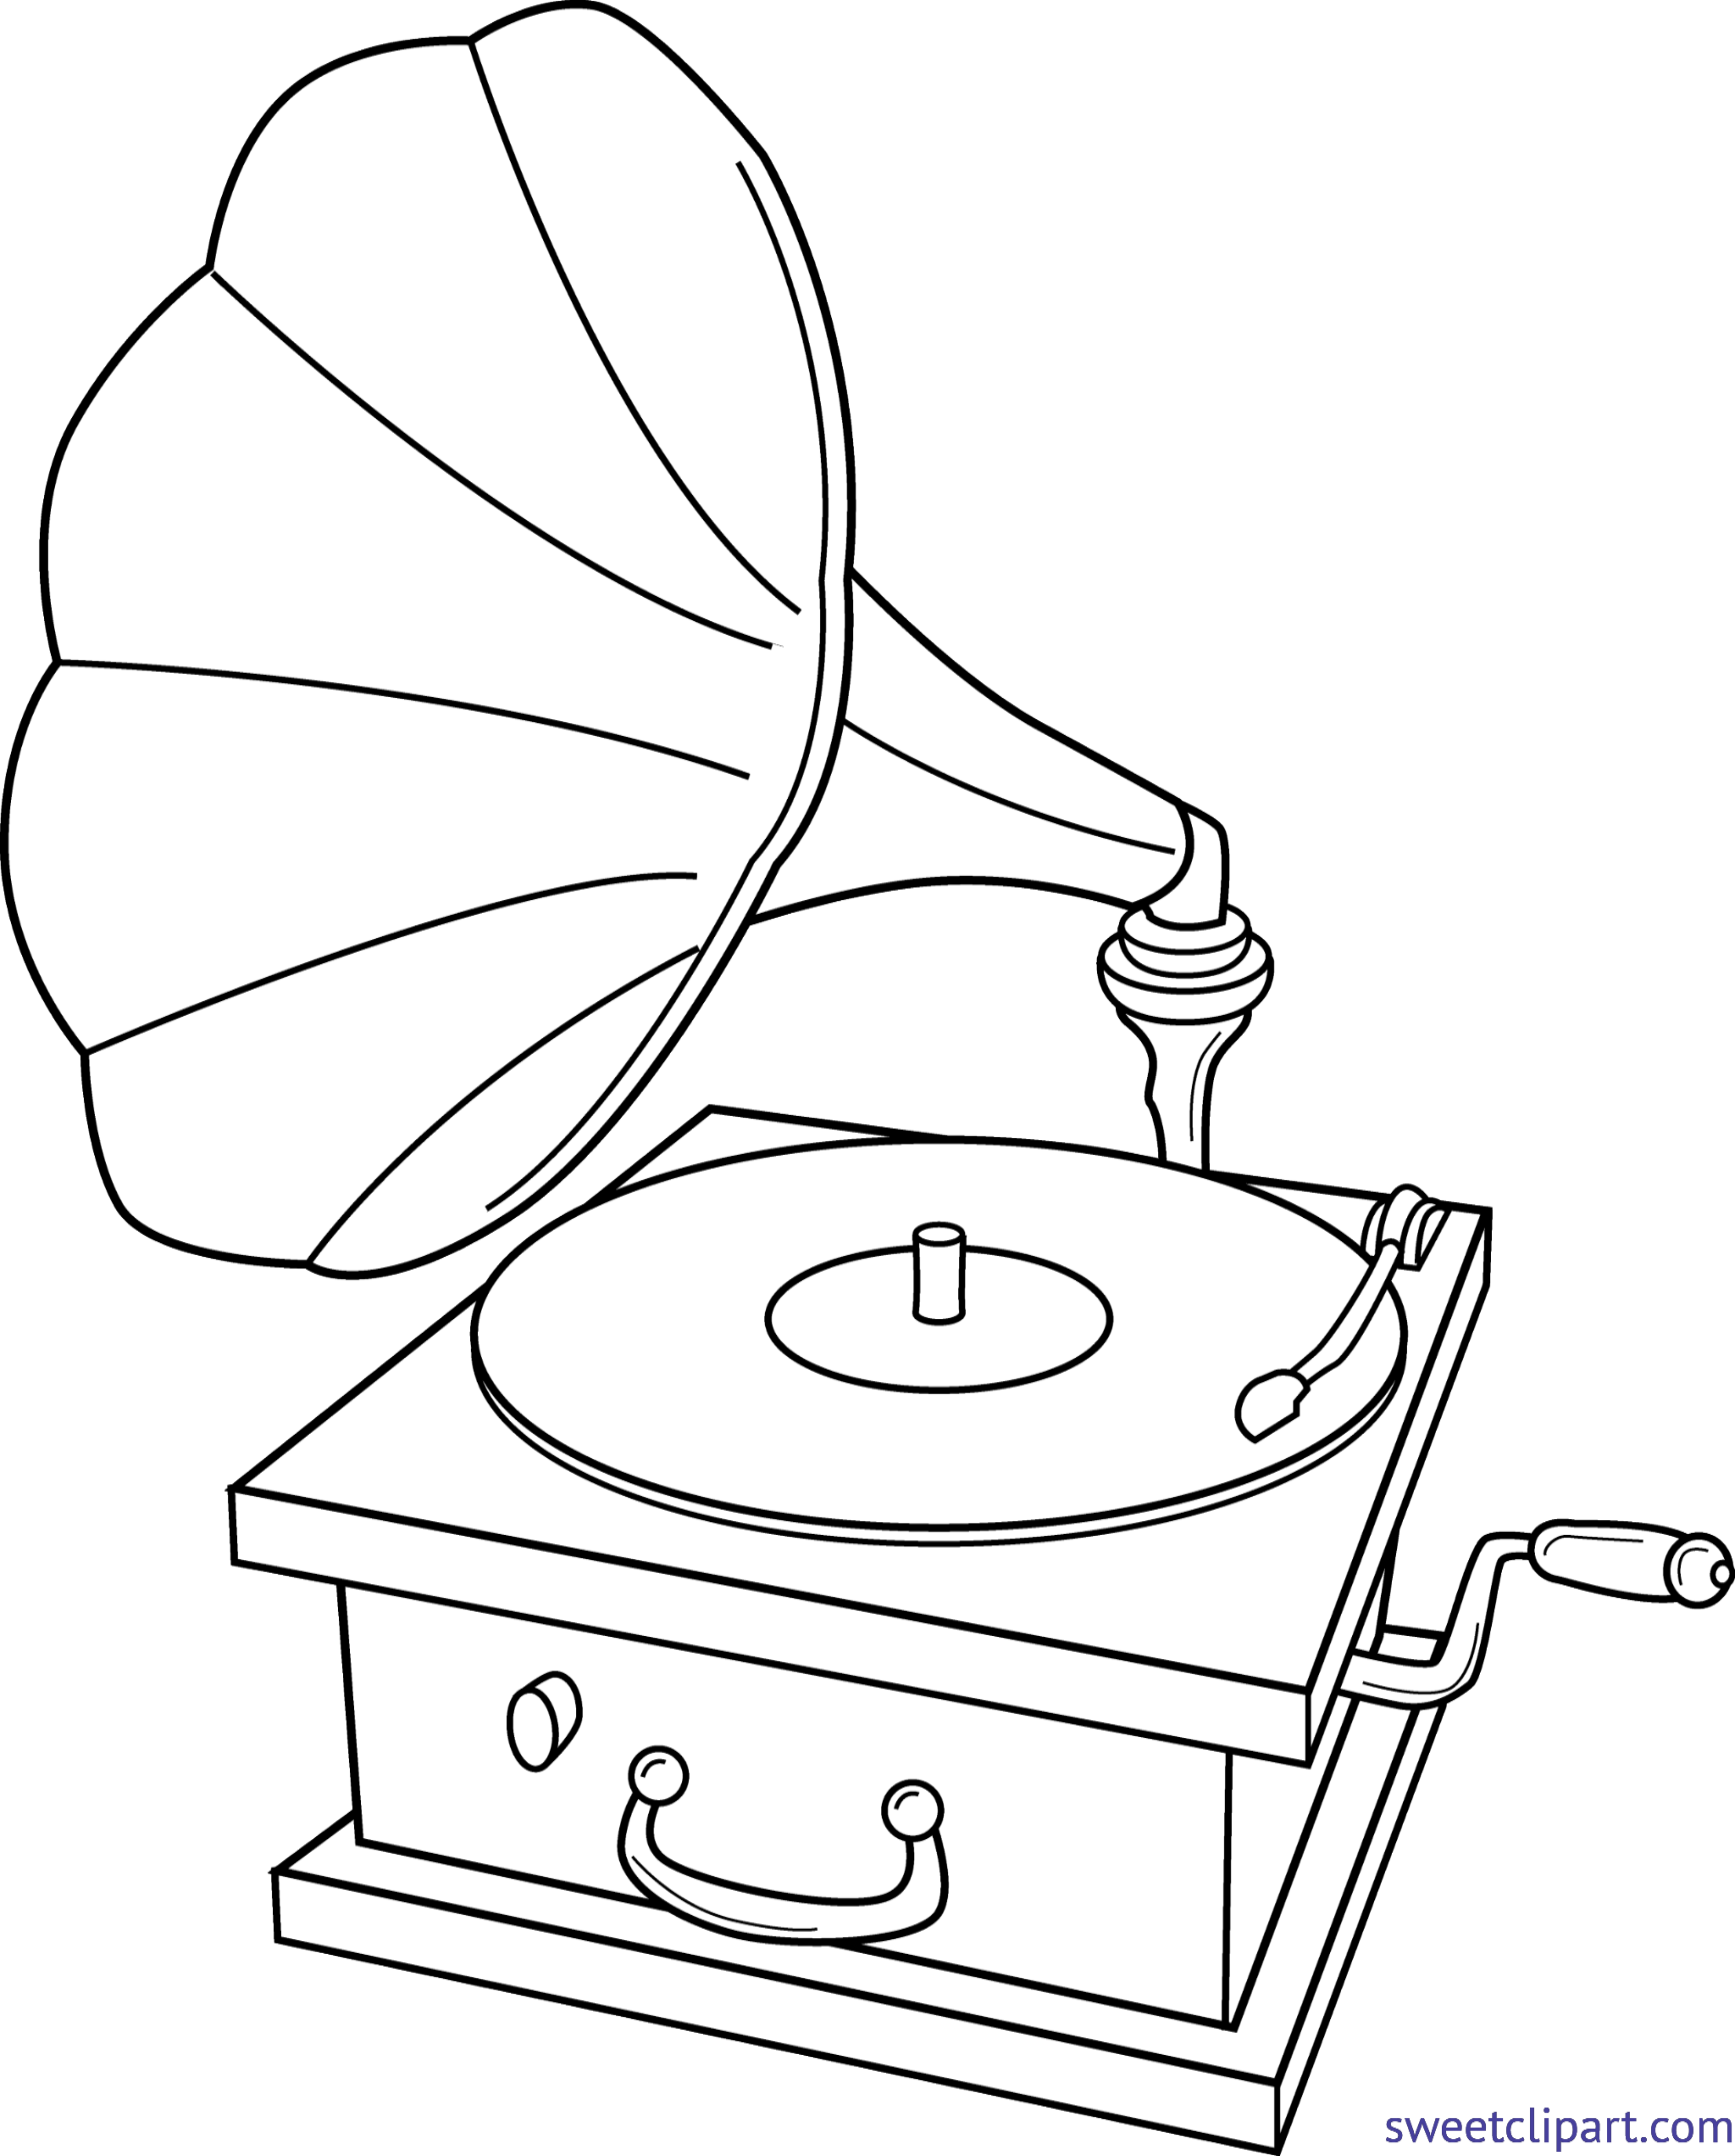 Record clipart record player. Lineart clip art sweet